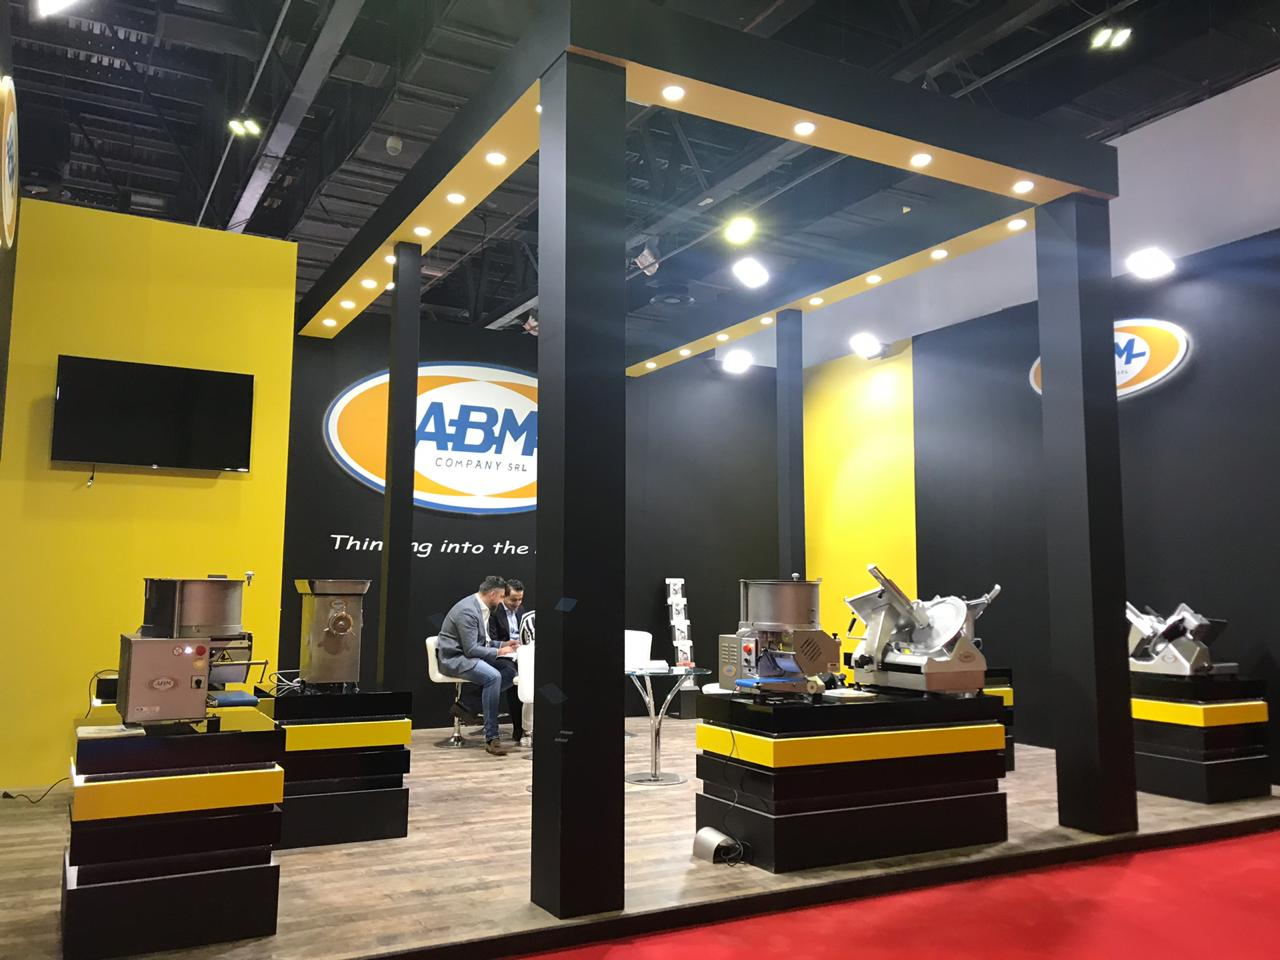 Exhibition Stand Builders Manufacturers : Abm exhibition stand designed & produced grand radium